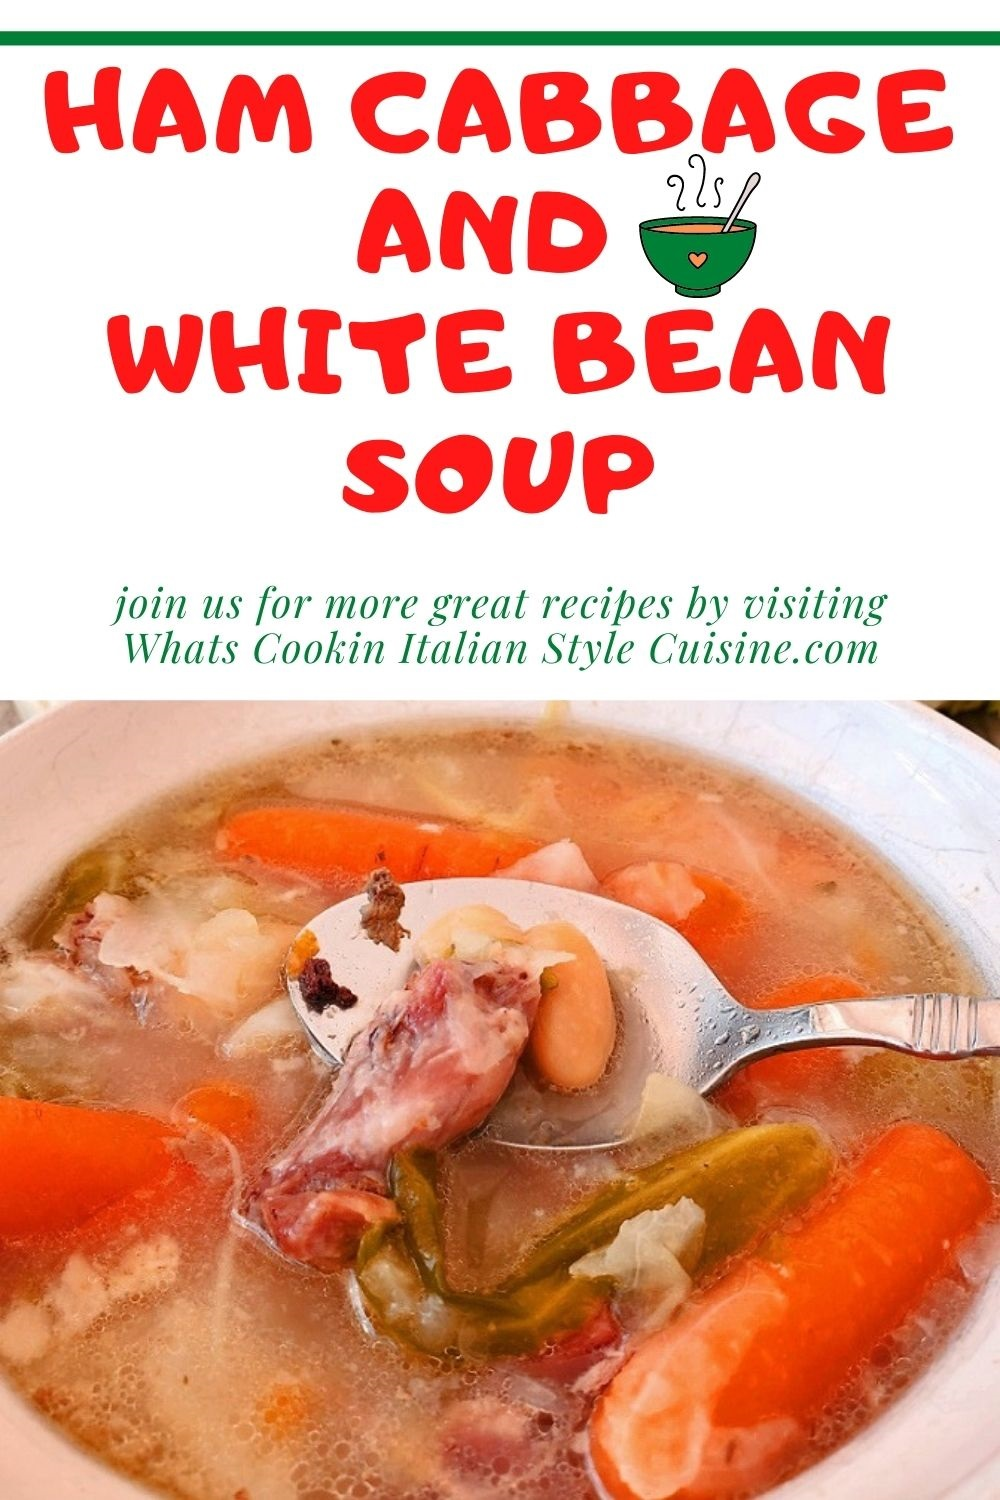 this is a pin for later on how to make ham, cabbage and white bean soup